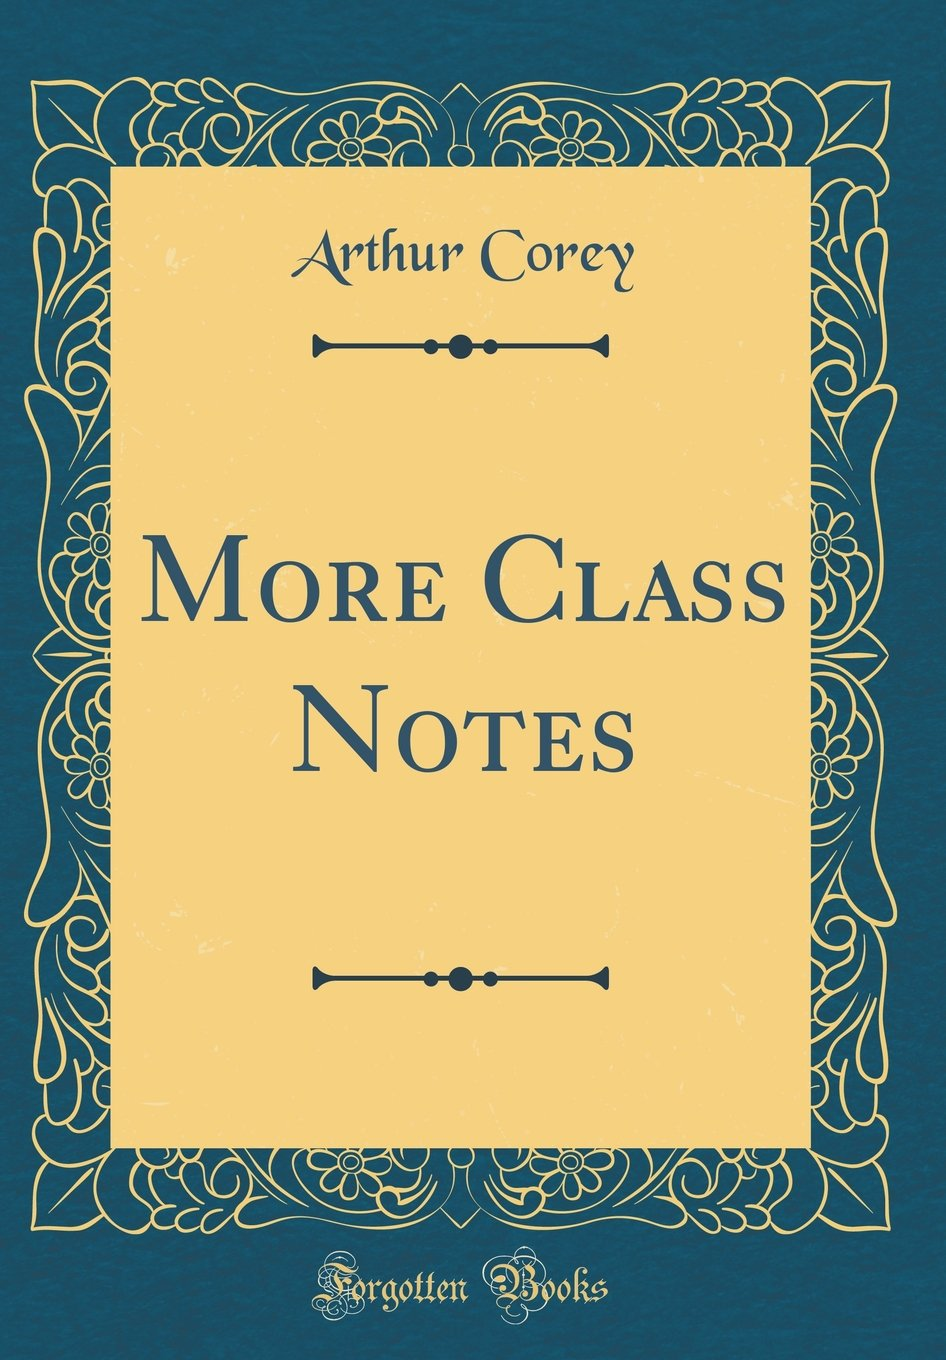 More Class Notes (Classic Reprint) Hardcover – January 19, 2018